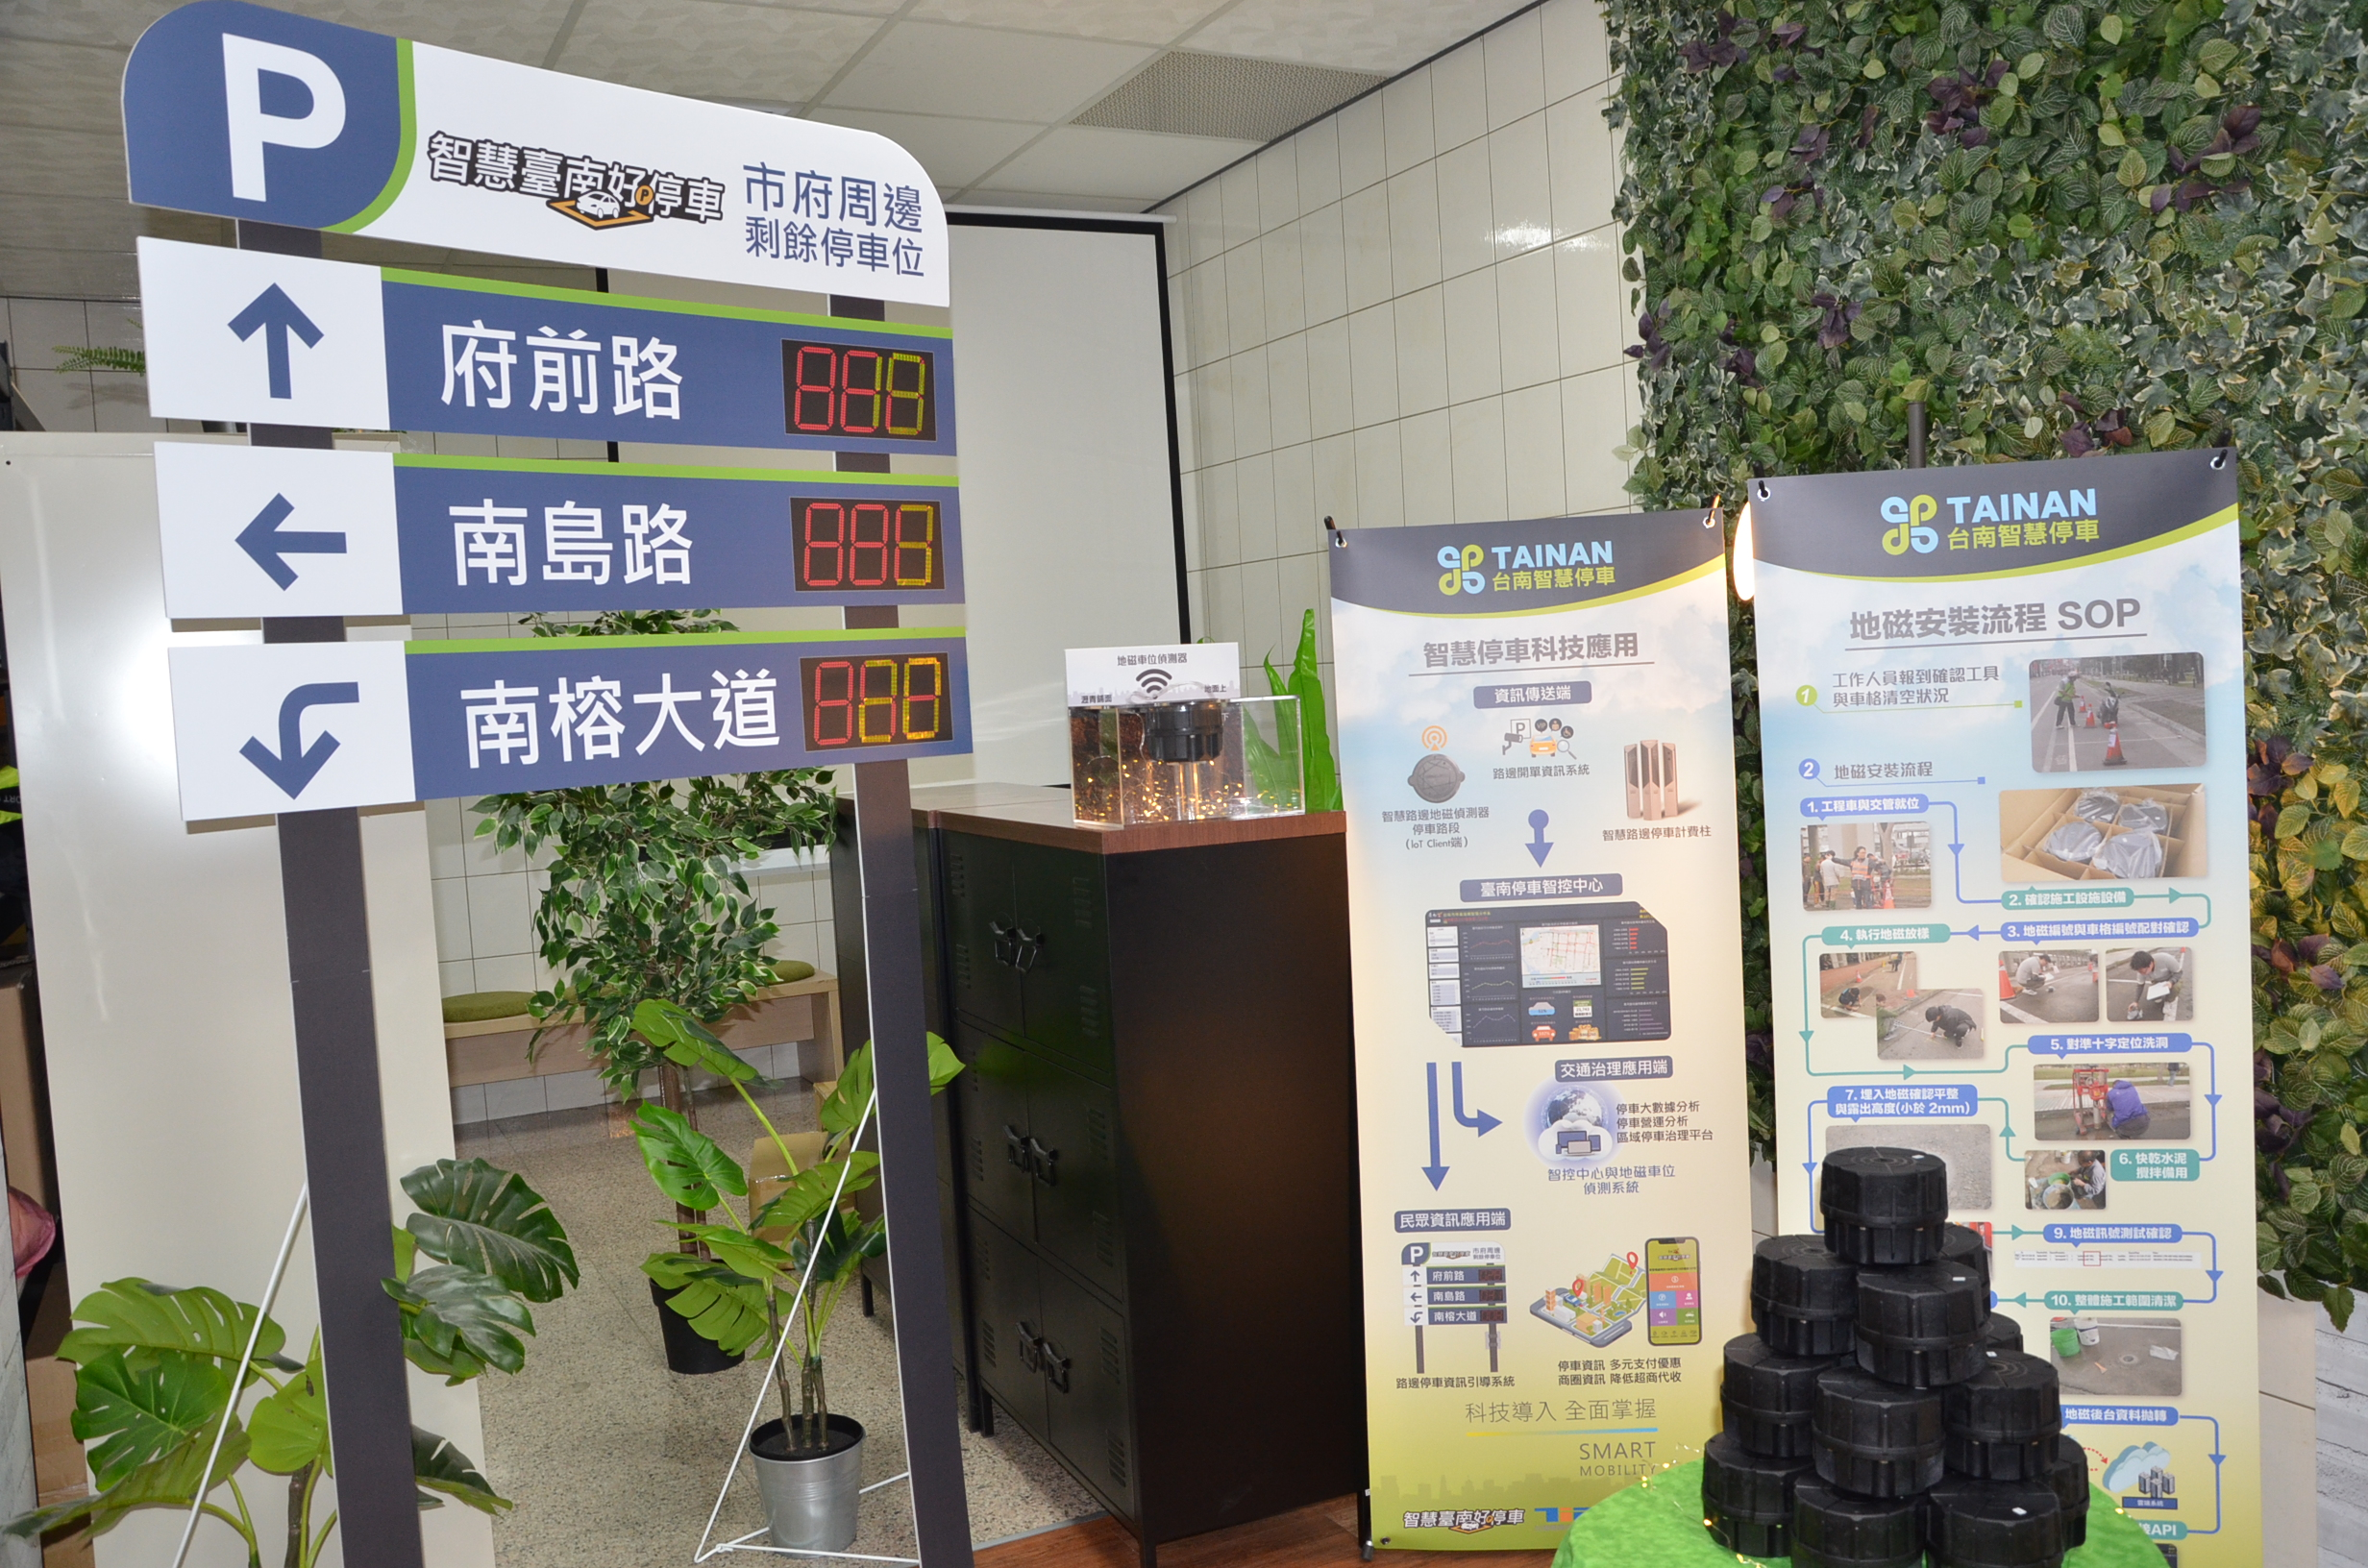 Tainan City Government Yonghua Civic Center, Tainan City Government, East District, Tainan, 台南保险套情人 总店, TYO:2733, Energy, Technology, Parking, System, Earth's magnetic field, energy, Organism, Poster, Plant, Display board, Building, Tourism